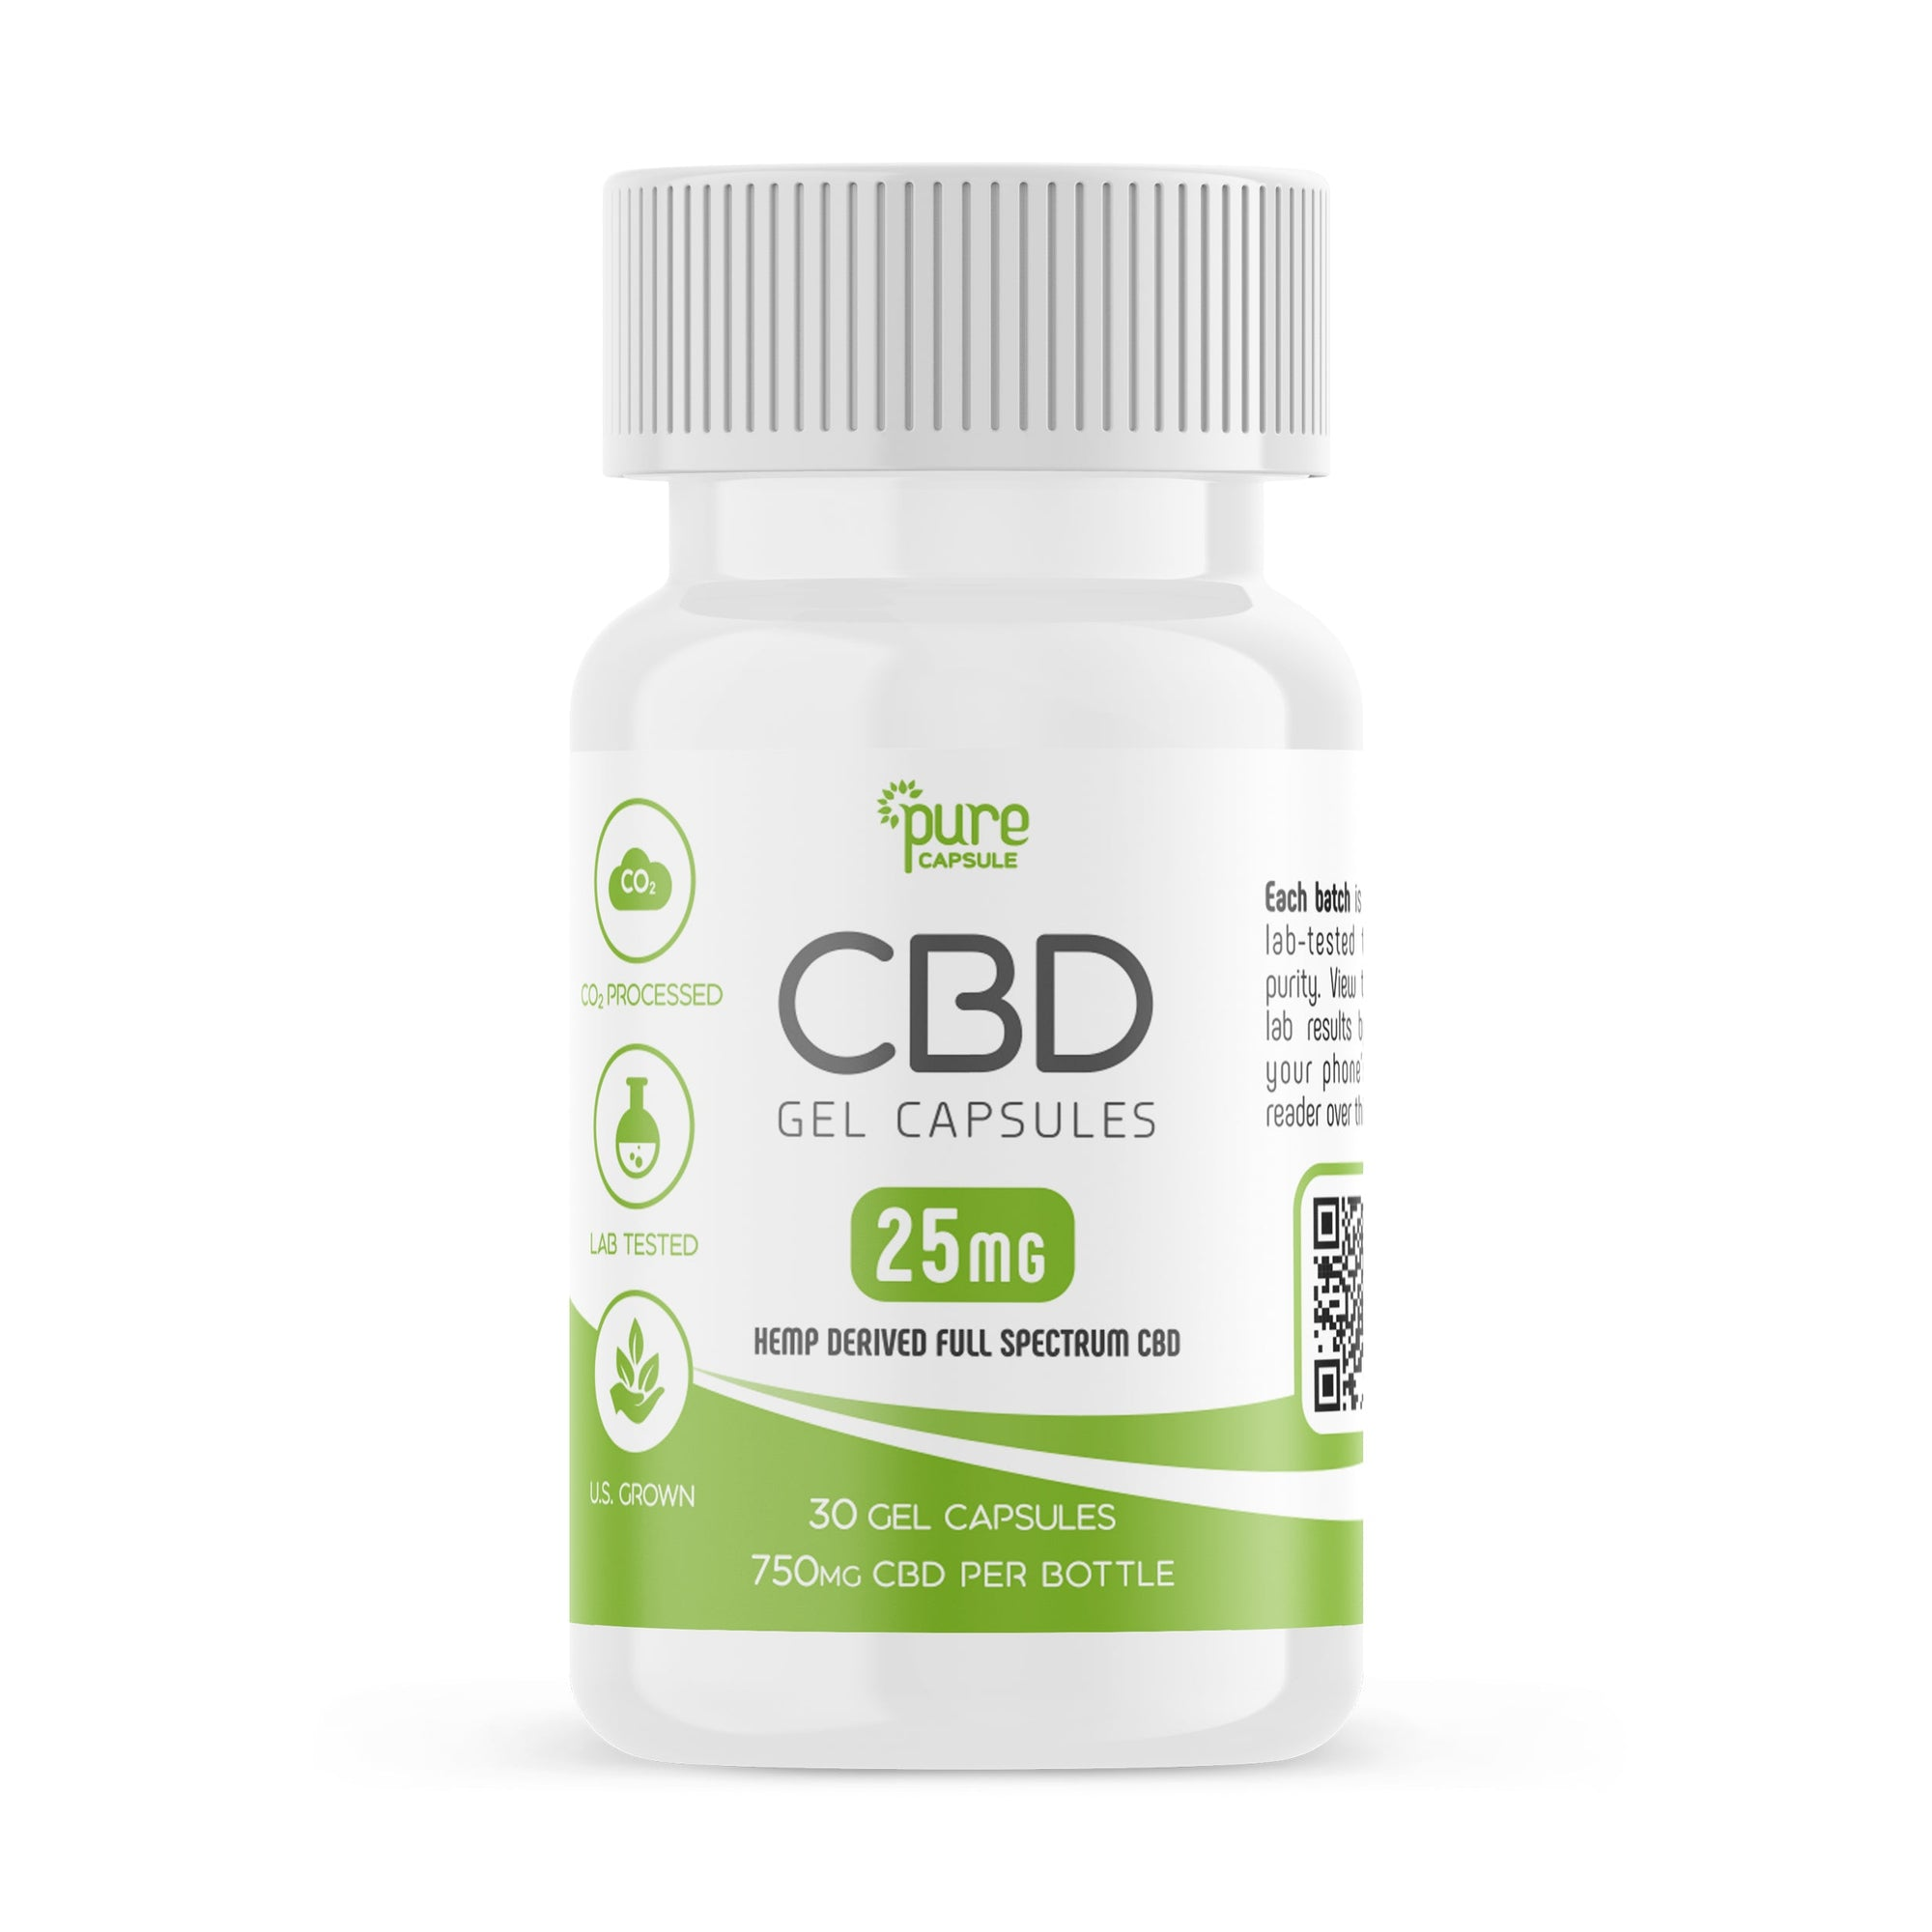 SLEEP BETTER DEAL: (90) 25 mg Full Spectrum CBD Gel Capsules